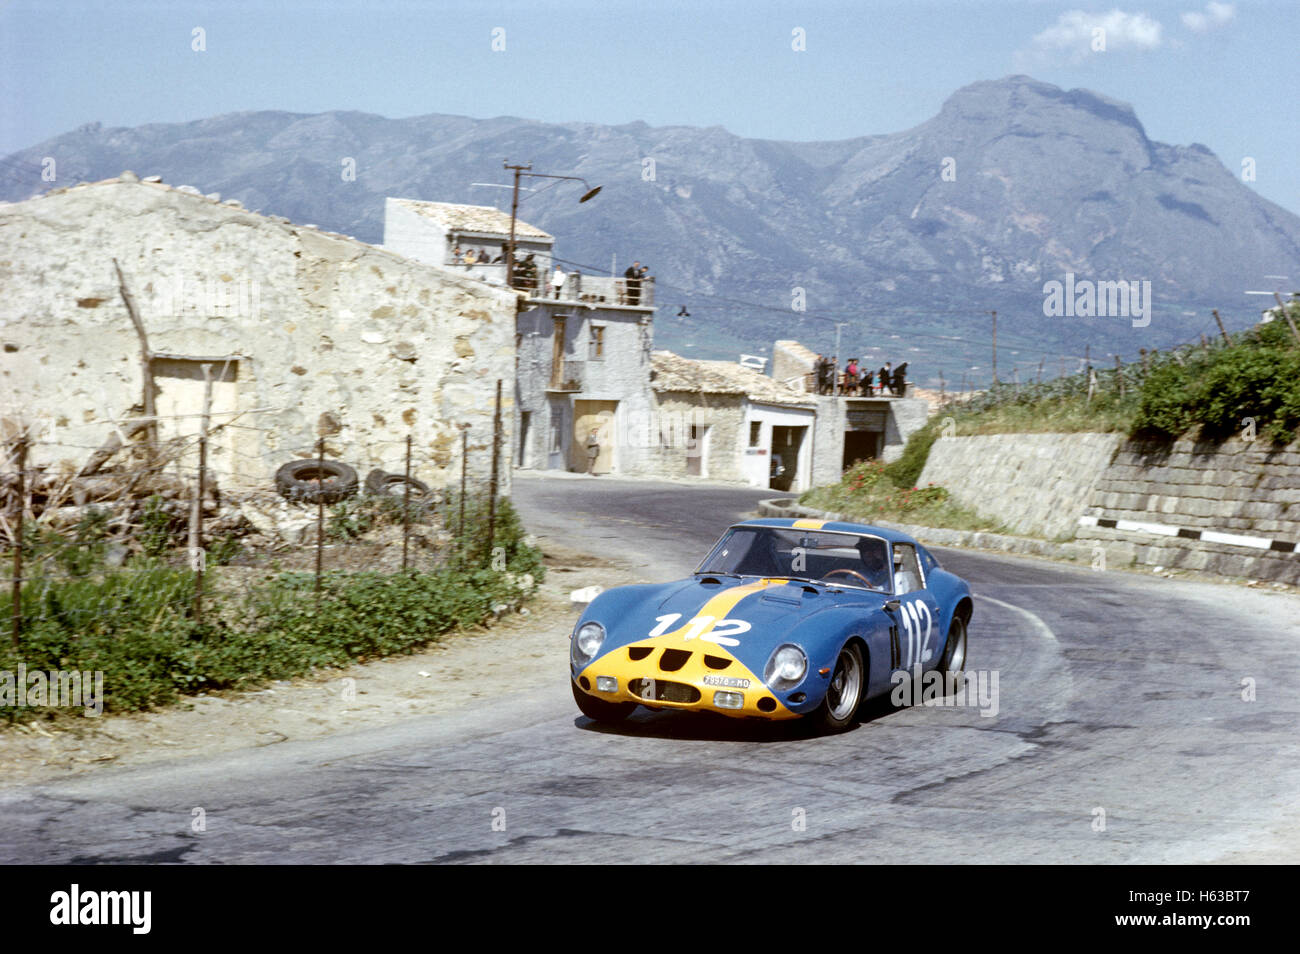 112 Ulf Norinder, Picko Troberg in a Ferrari 250 GTO finished 9th in the Targa Florio 26 April 1964 - Stock Image